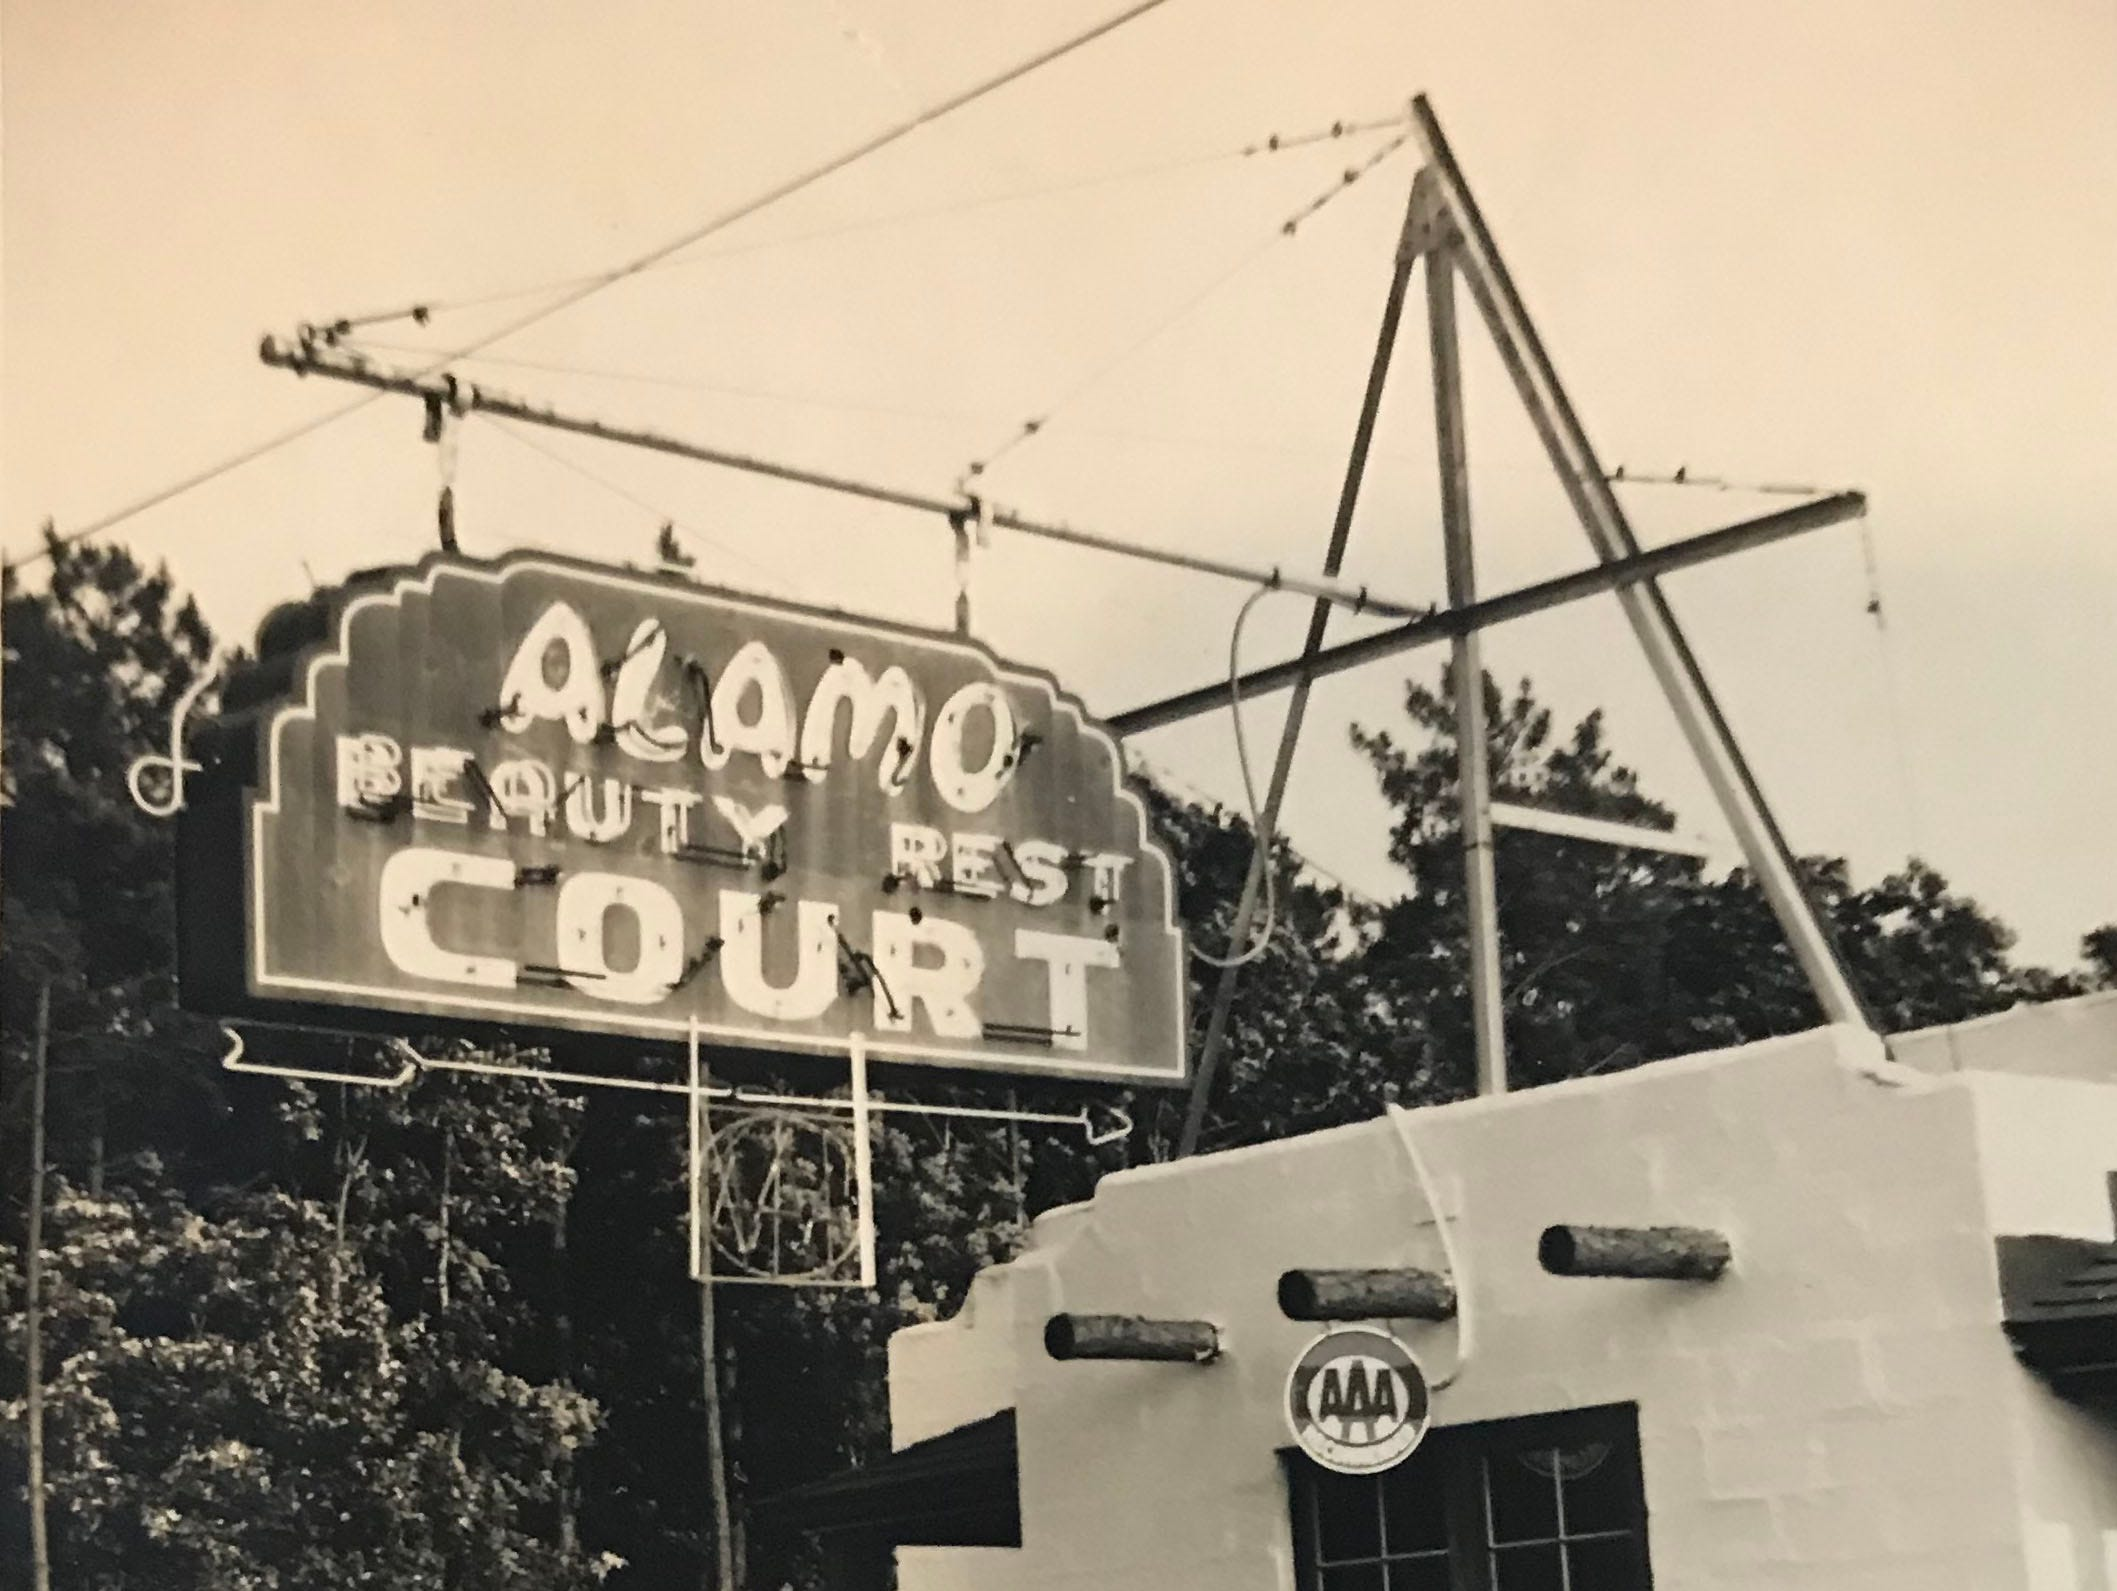 The Alamo Court sign in West Ocean City.